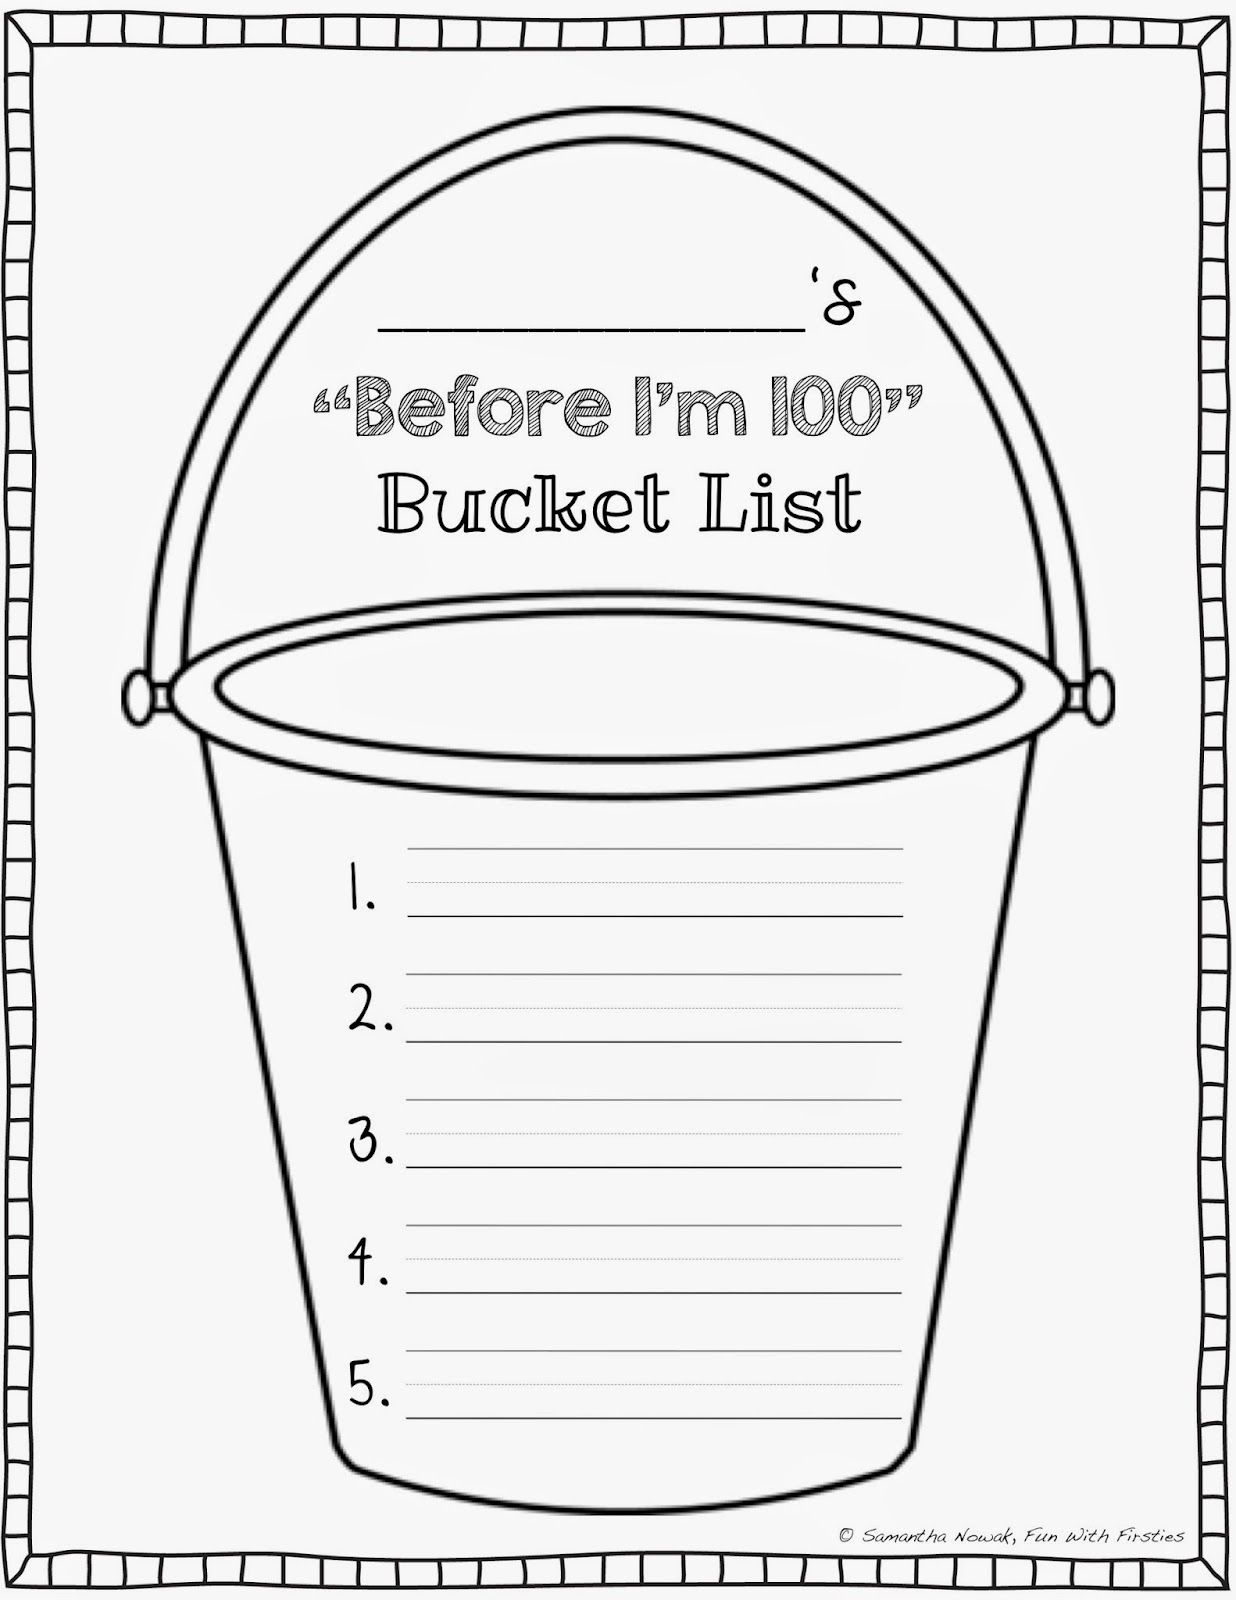 The 100th Day of School! | Free worksheets, Worksheets and Activities